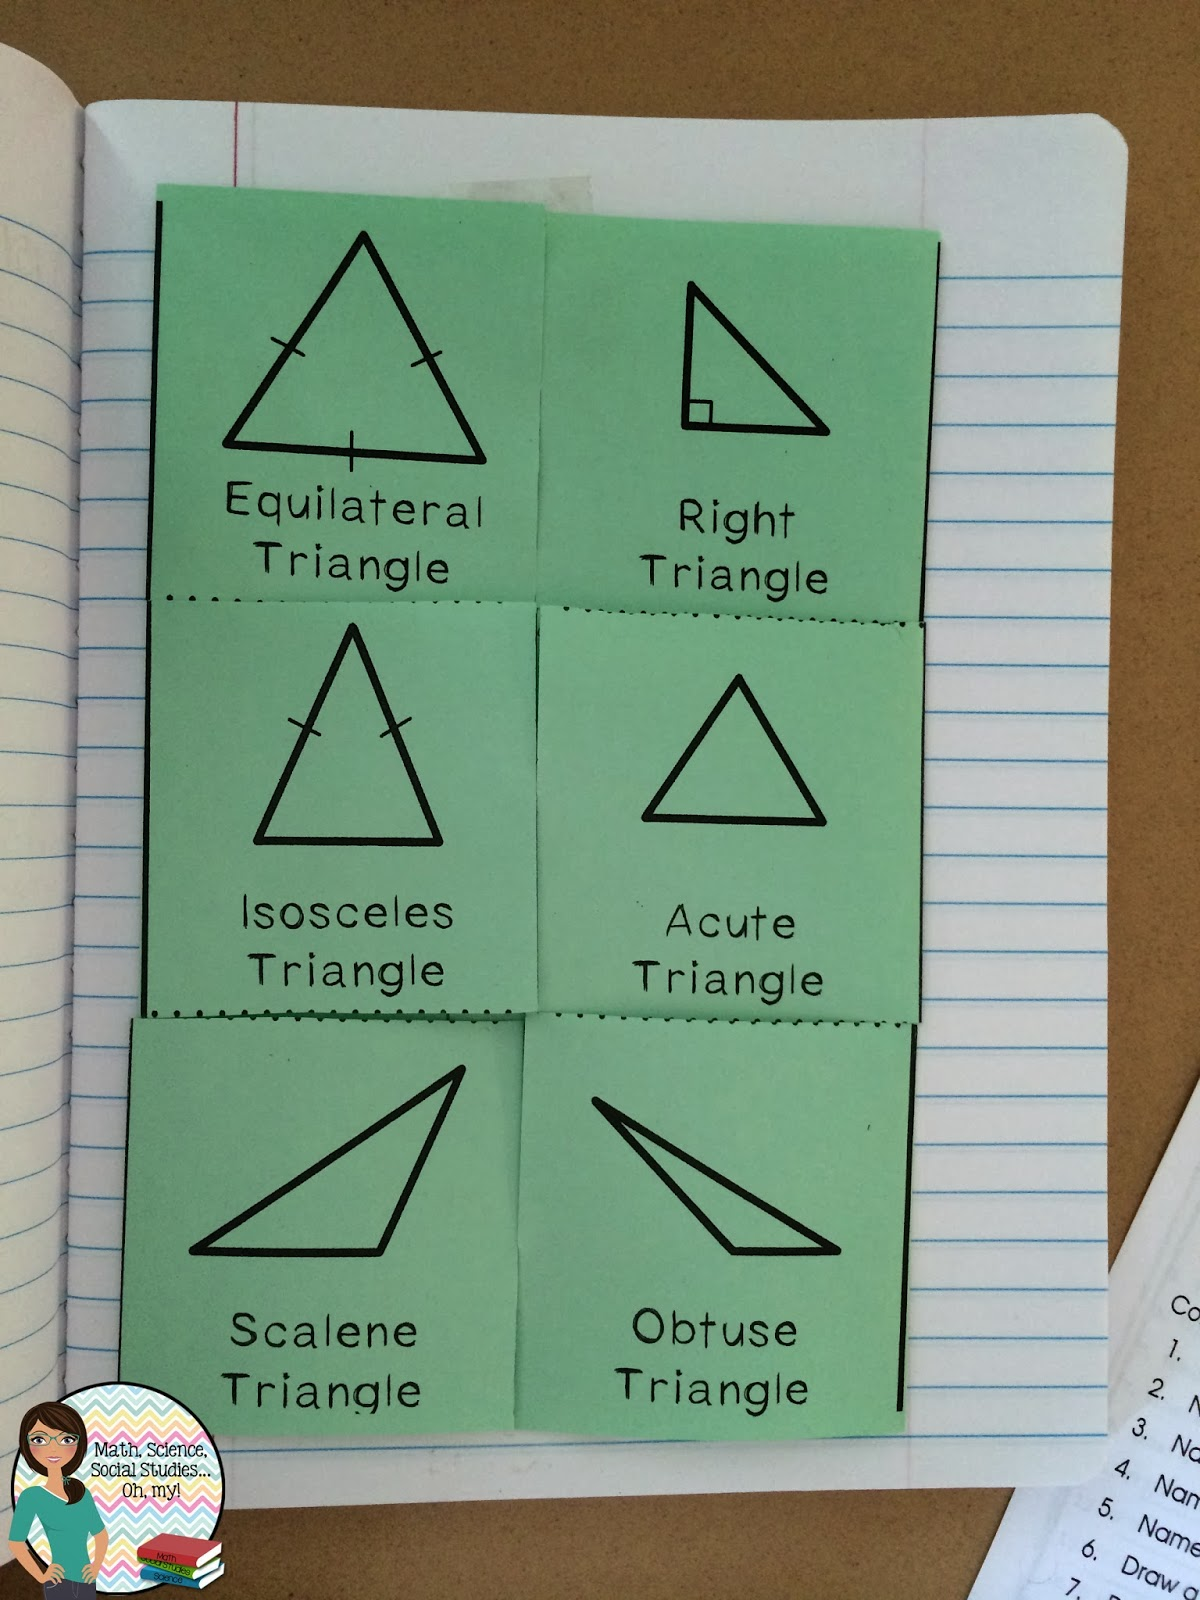 Foldable Friday: Types of Triangles | Technically Speaking ... - photo#18